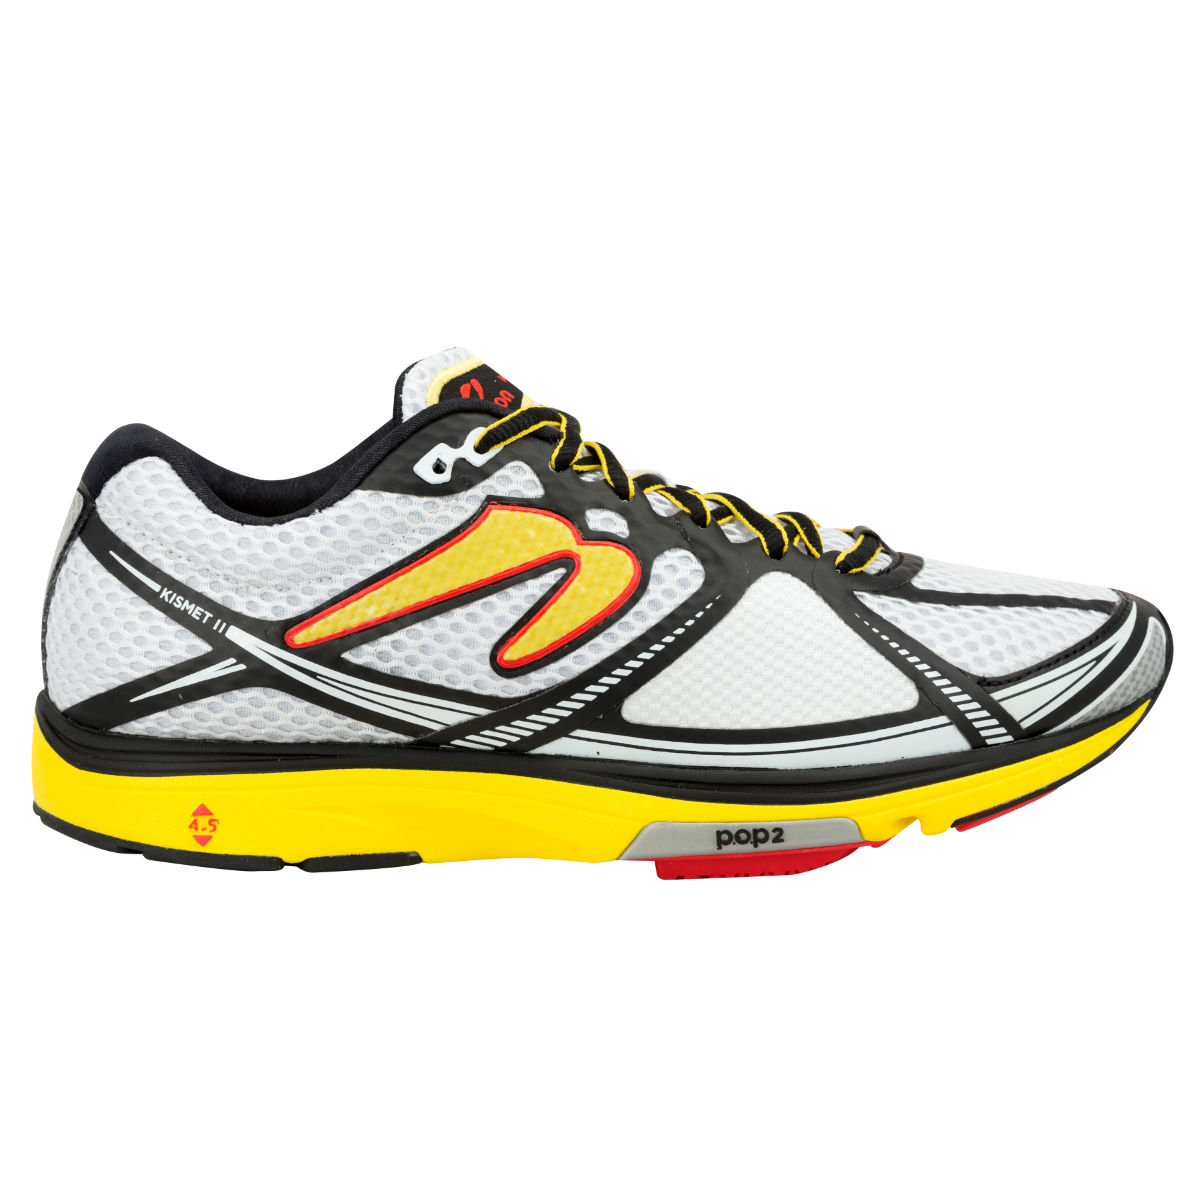 Chaussures Newton Running Kismet II (AH16) - 8 UK White/Yellow Chaussures de running amorties